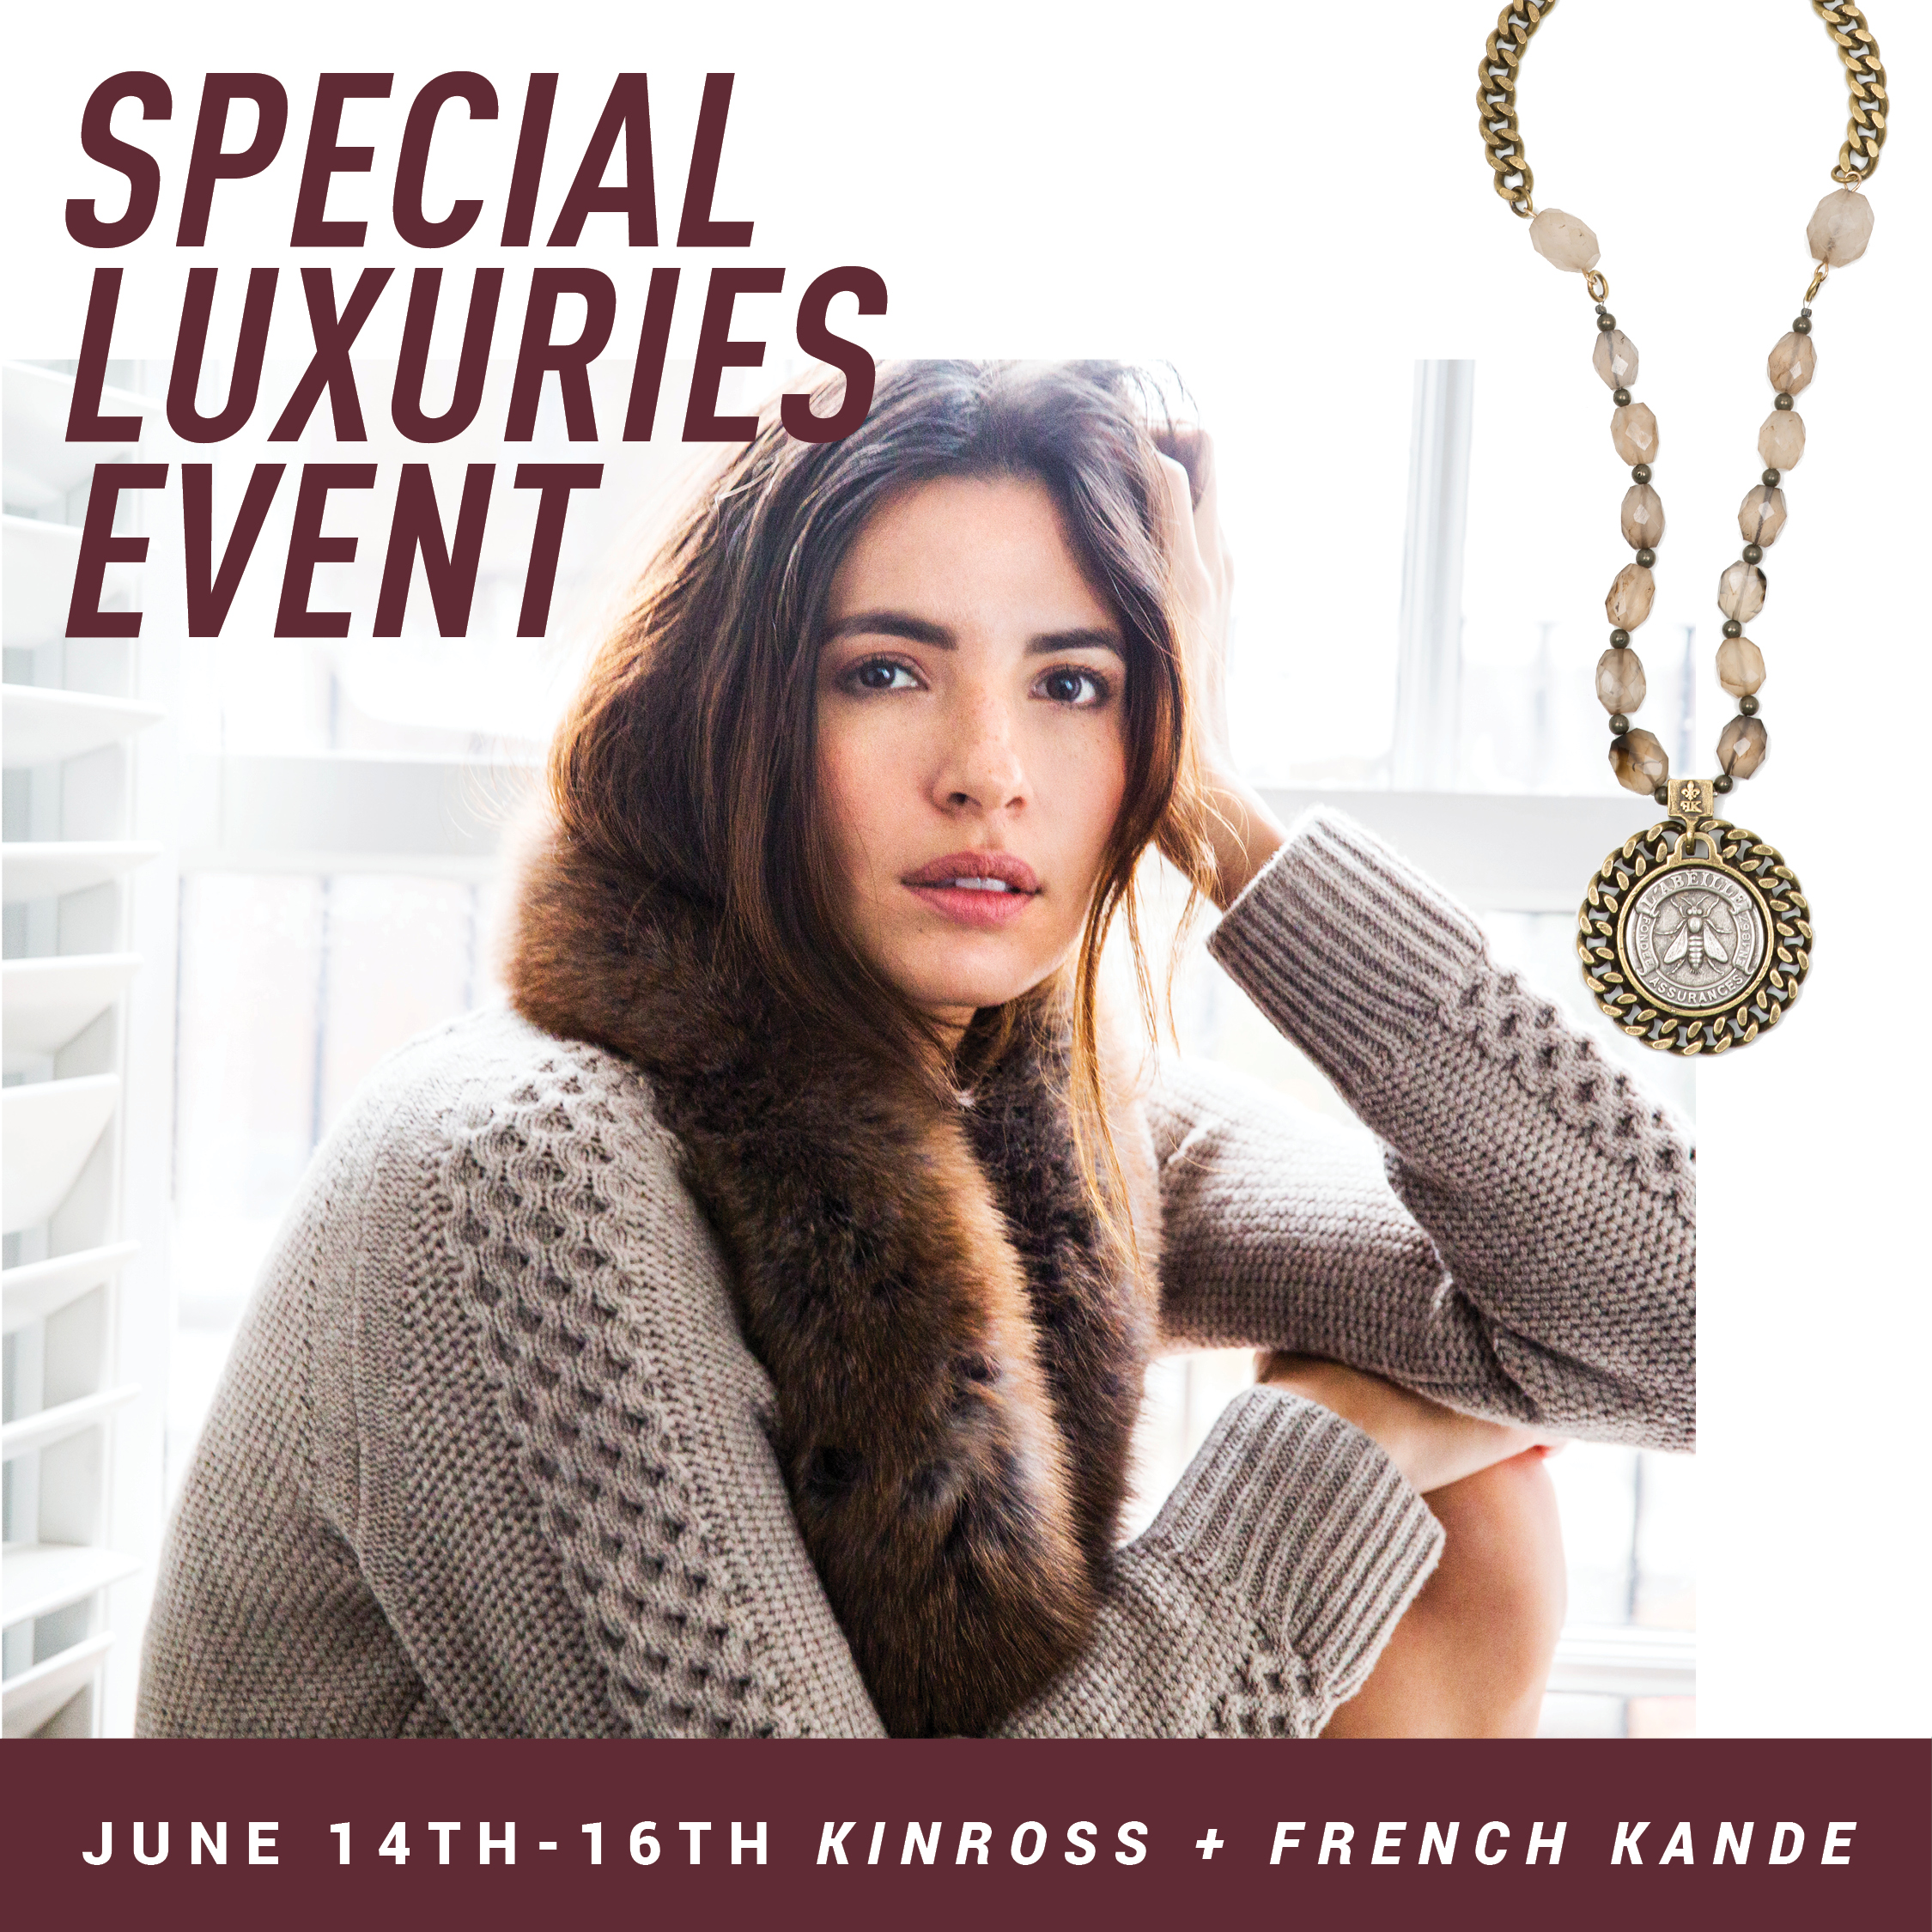 Special Luxuries Event  ///  Kinross + French Kande